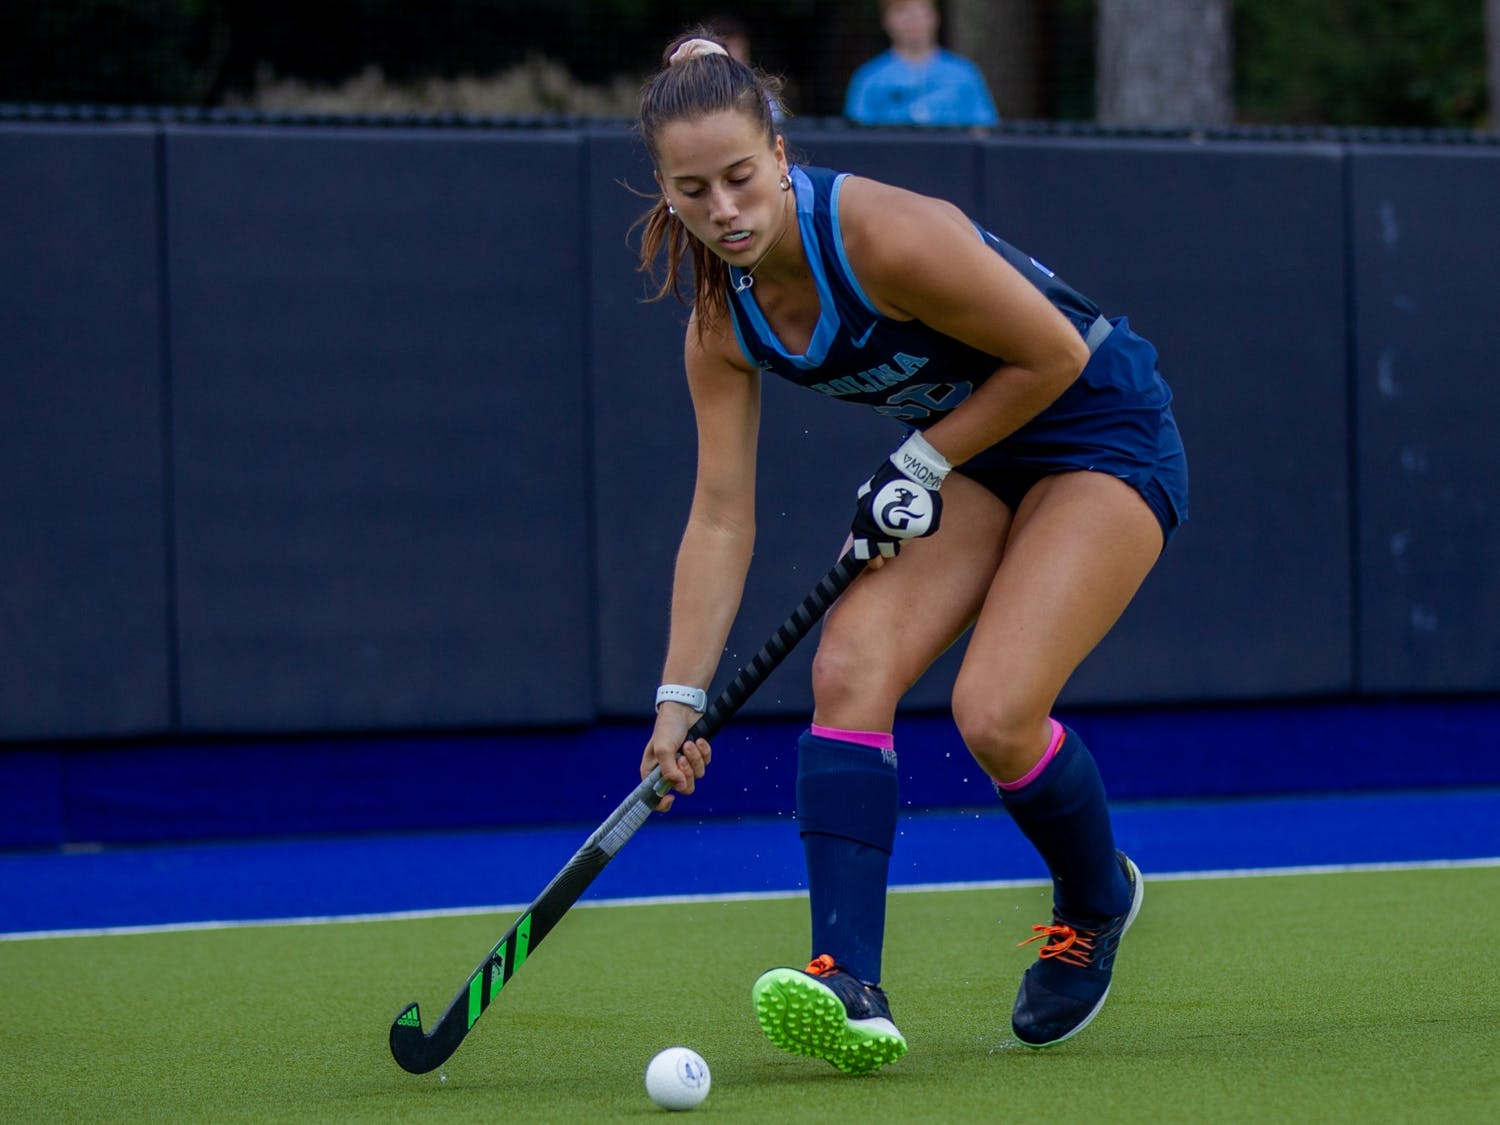 First-year forward Kennedy Cliggett (36) passes the ball at the hockey game against Louisville on Oct. 22 at the Karen Shelton Stadium. UNC lost 2-3 in overtime.